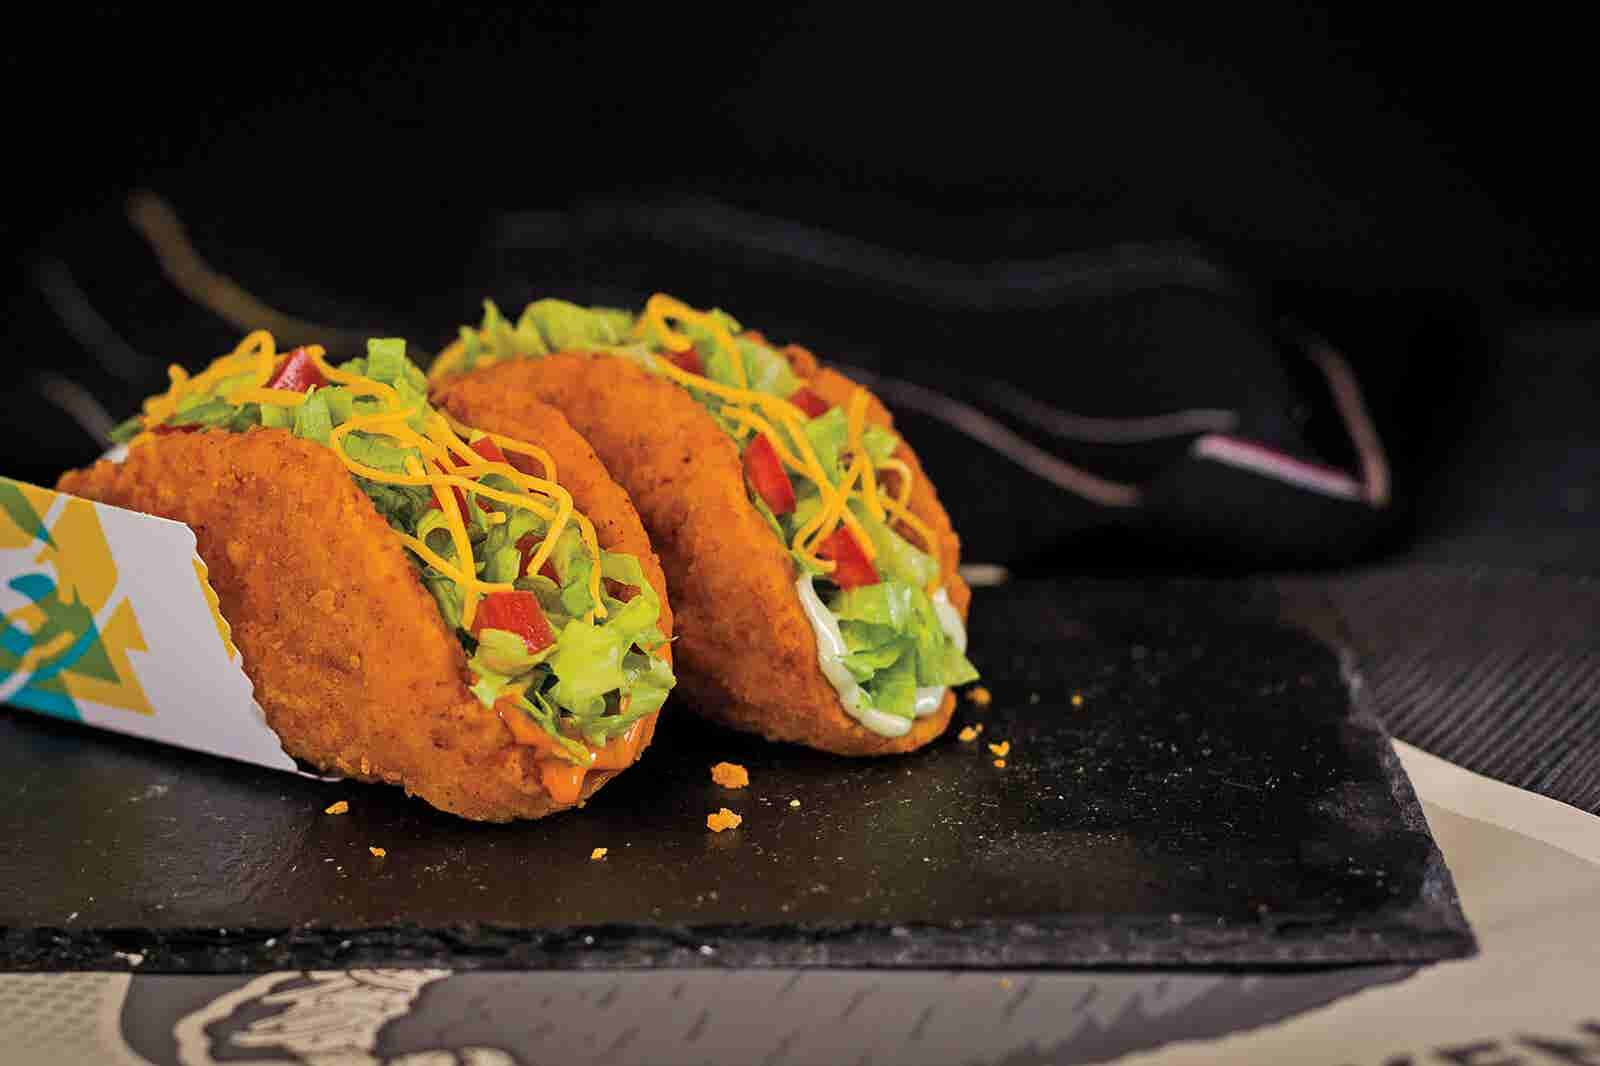 #4 on the Franchise 500: Why Taco Bell Has Its Sights Set On Your City